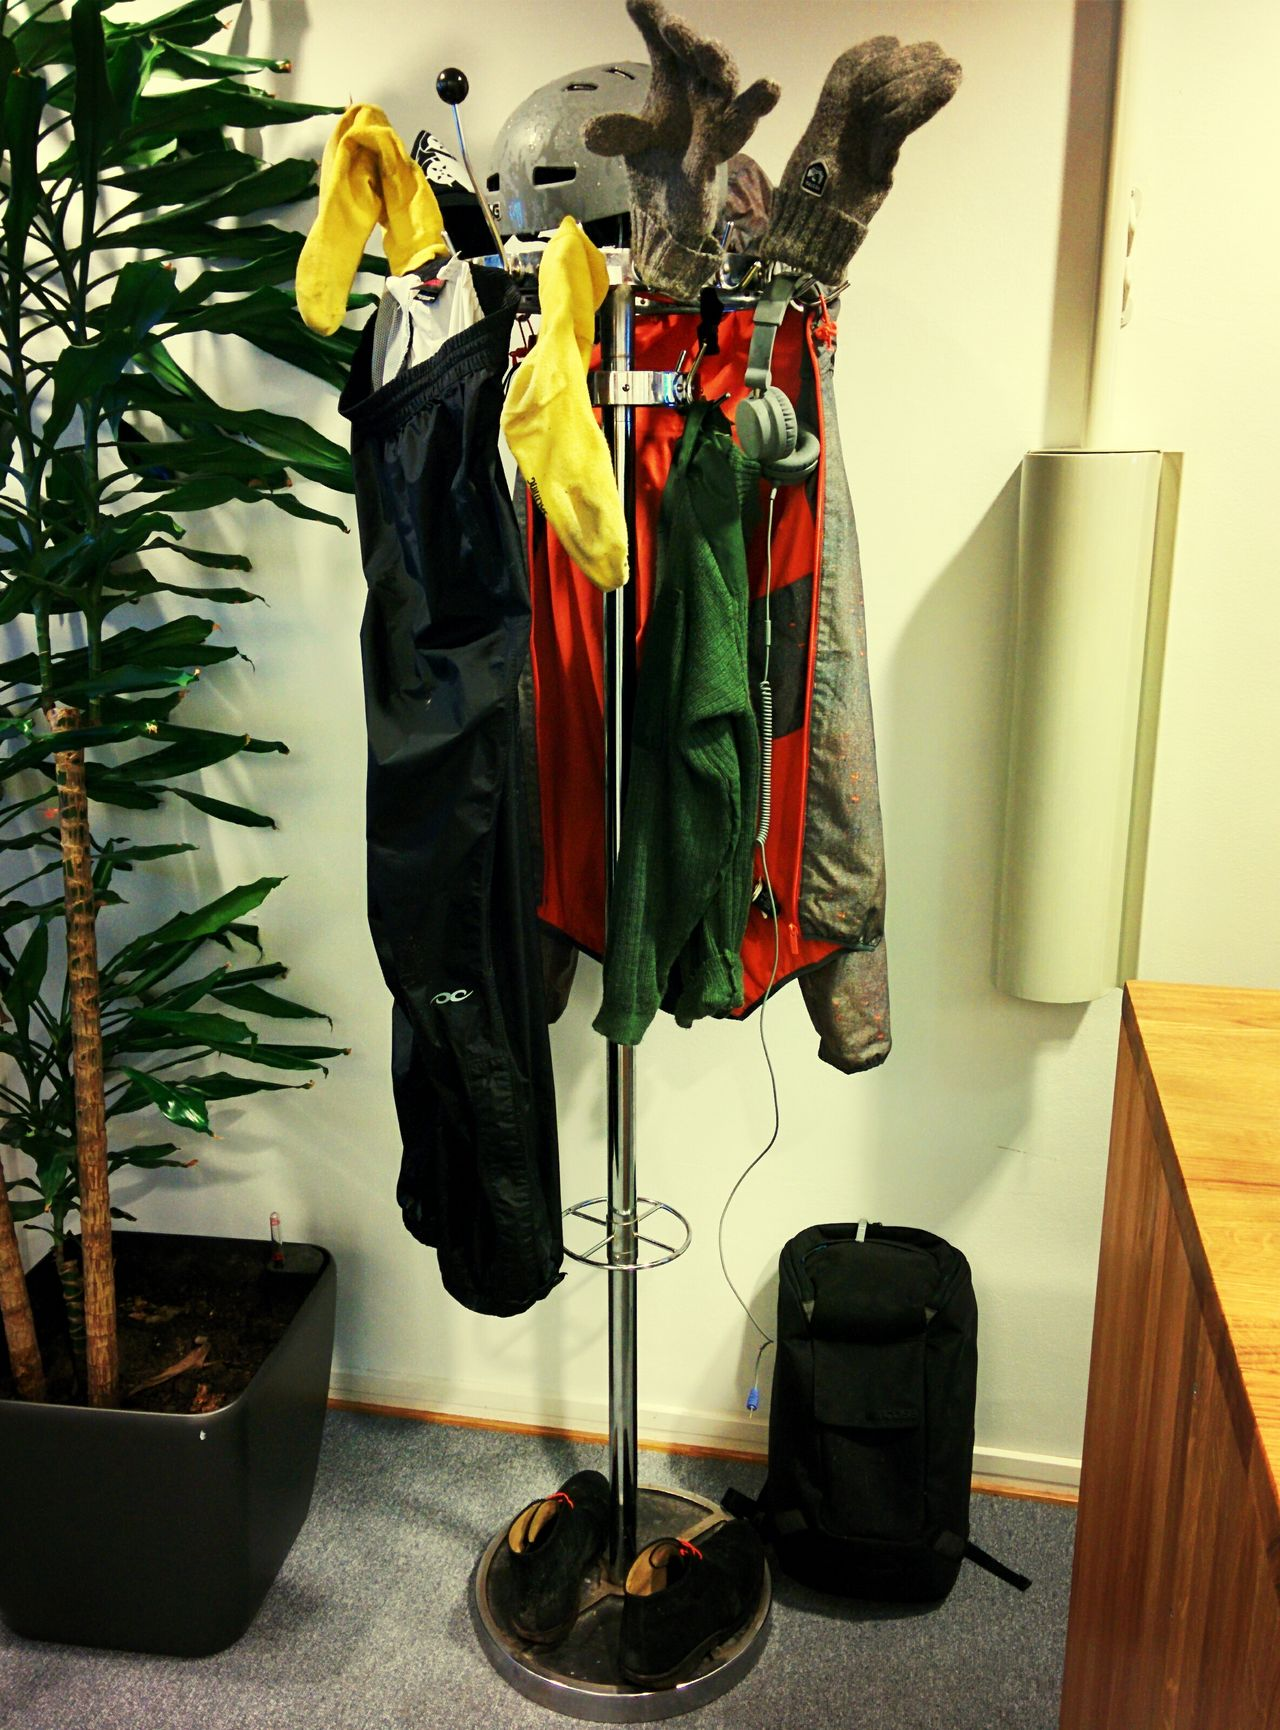 Rain Biking Drying Clothes Christmas Tree